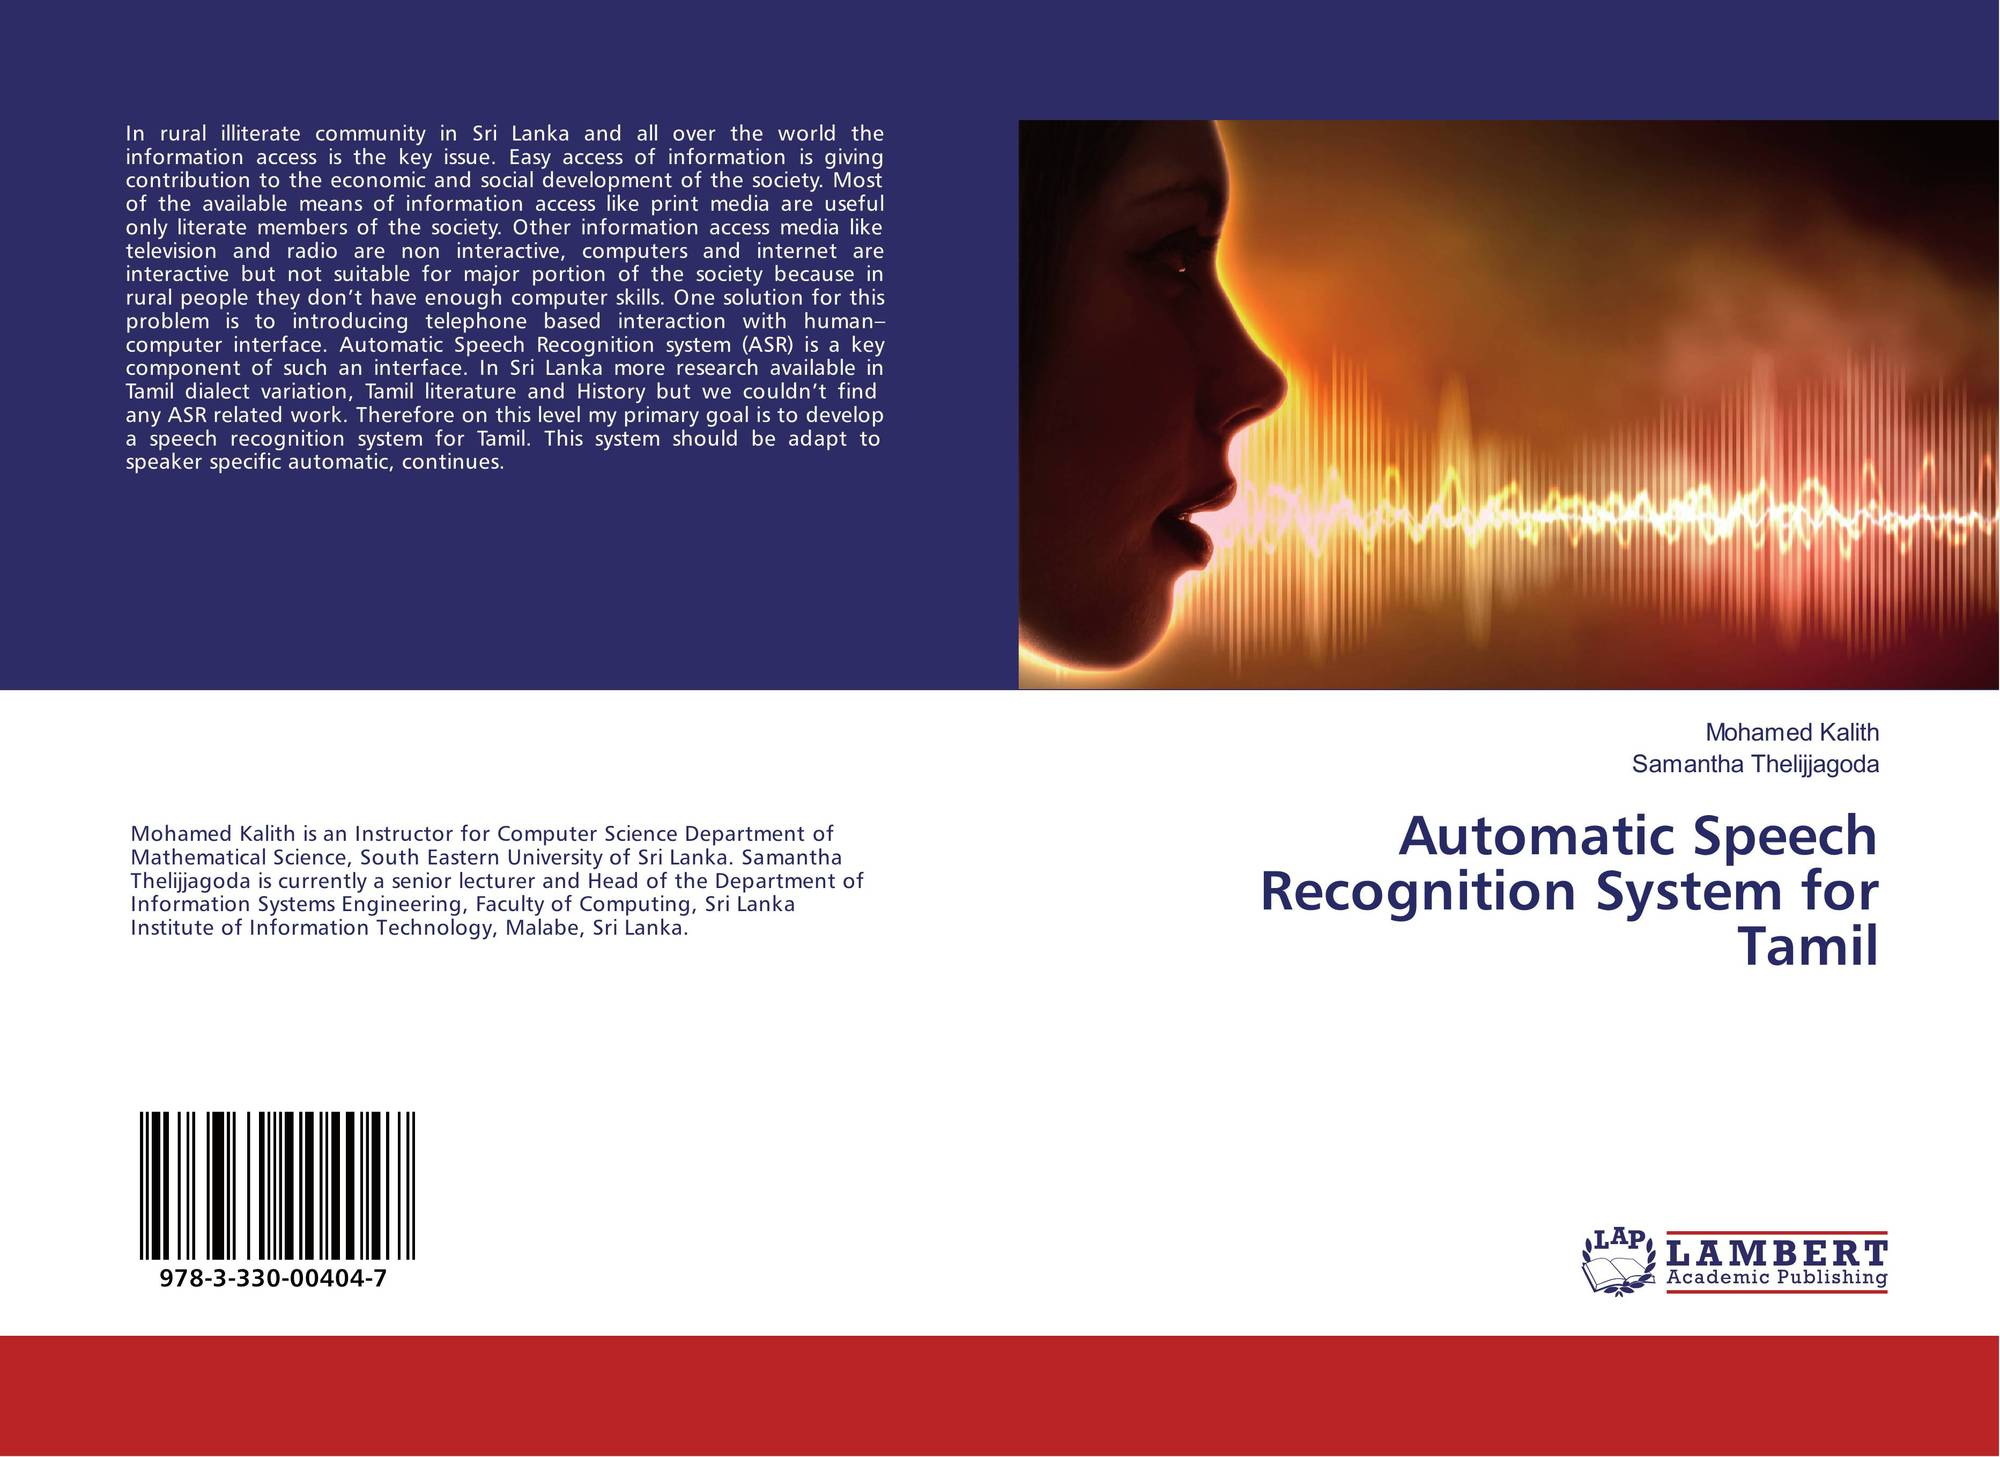 Automatic Speech Recognition System for Tamil, 978-3-330-00404-7